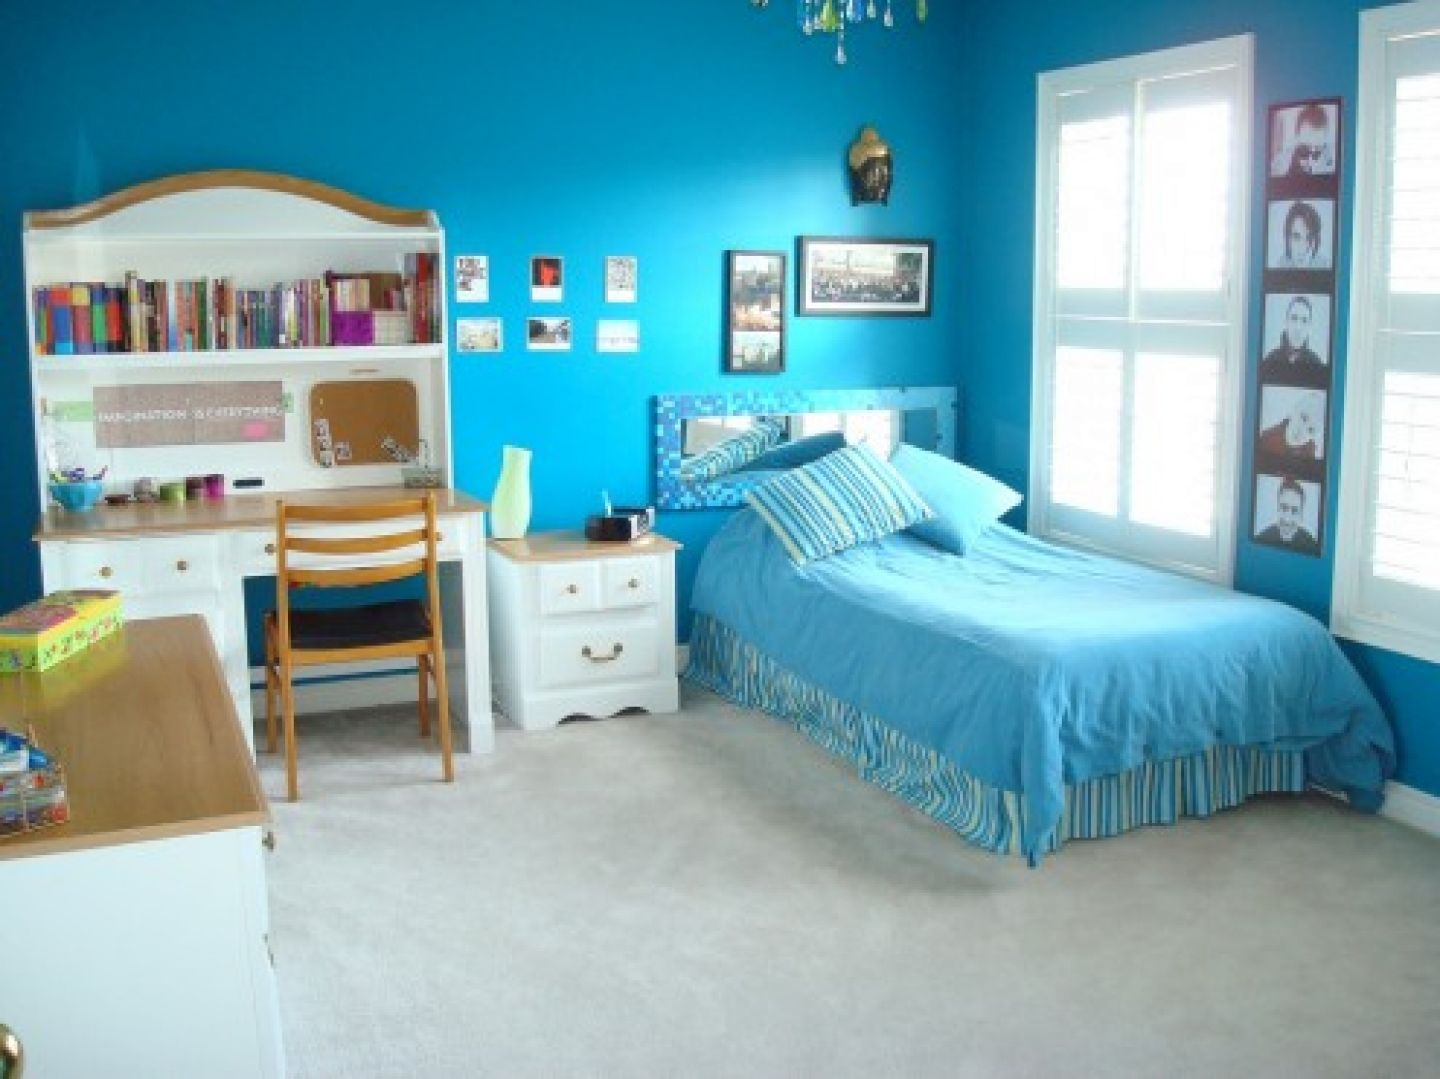 Bedroom designs for couples in blue - Awesome Teen Girl Bedroom Decorating Ideas With Blue Bedding